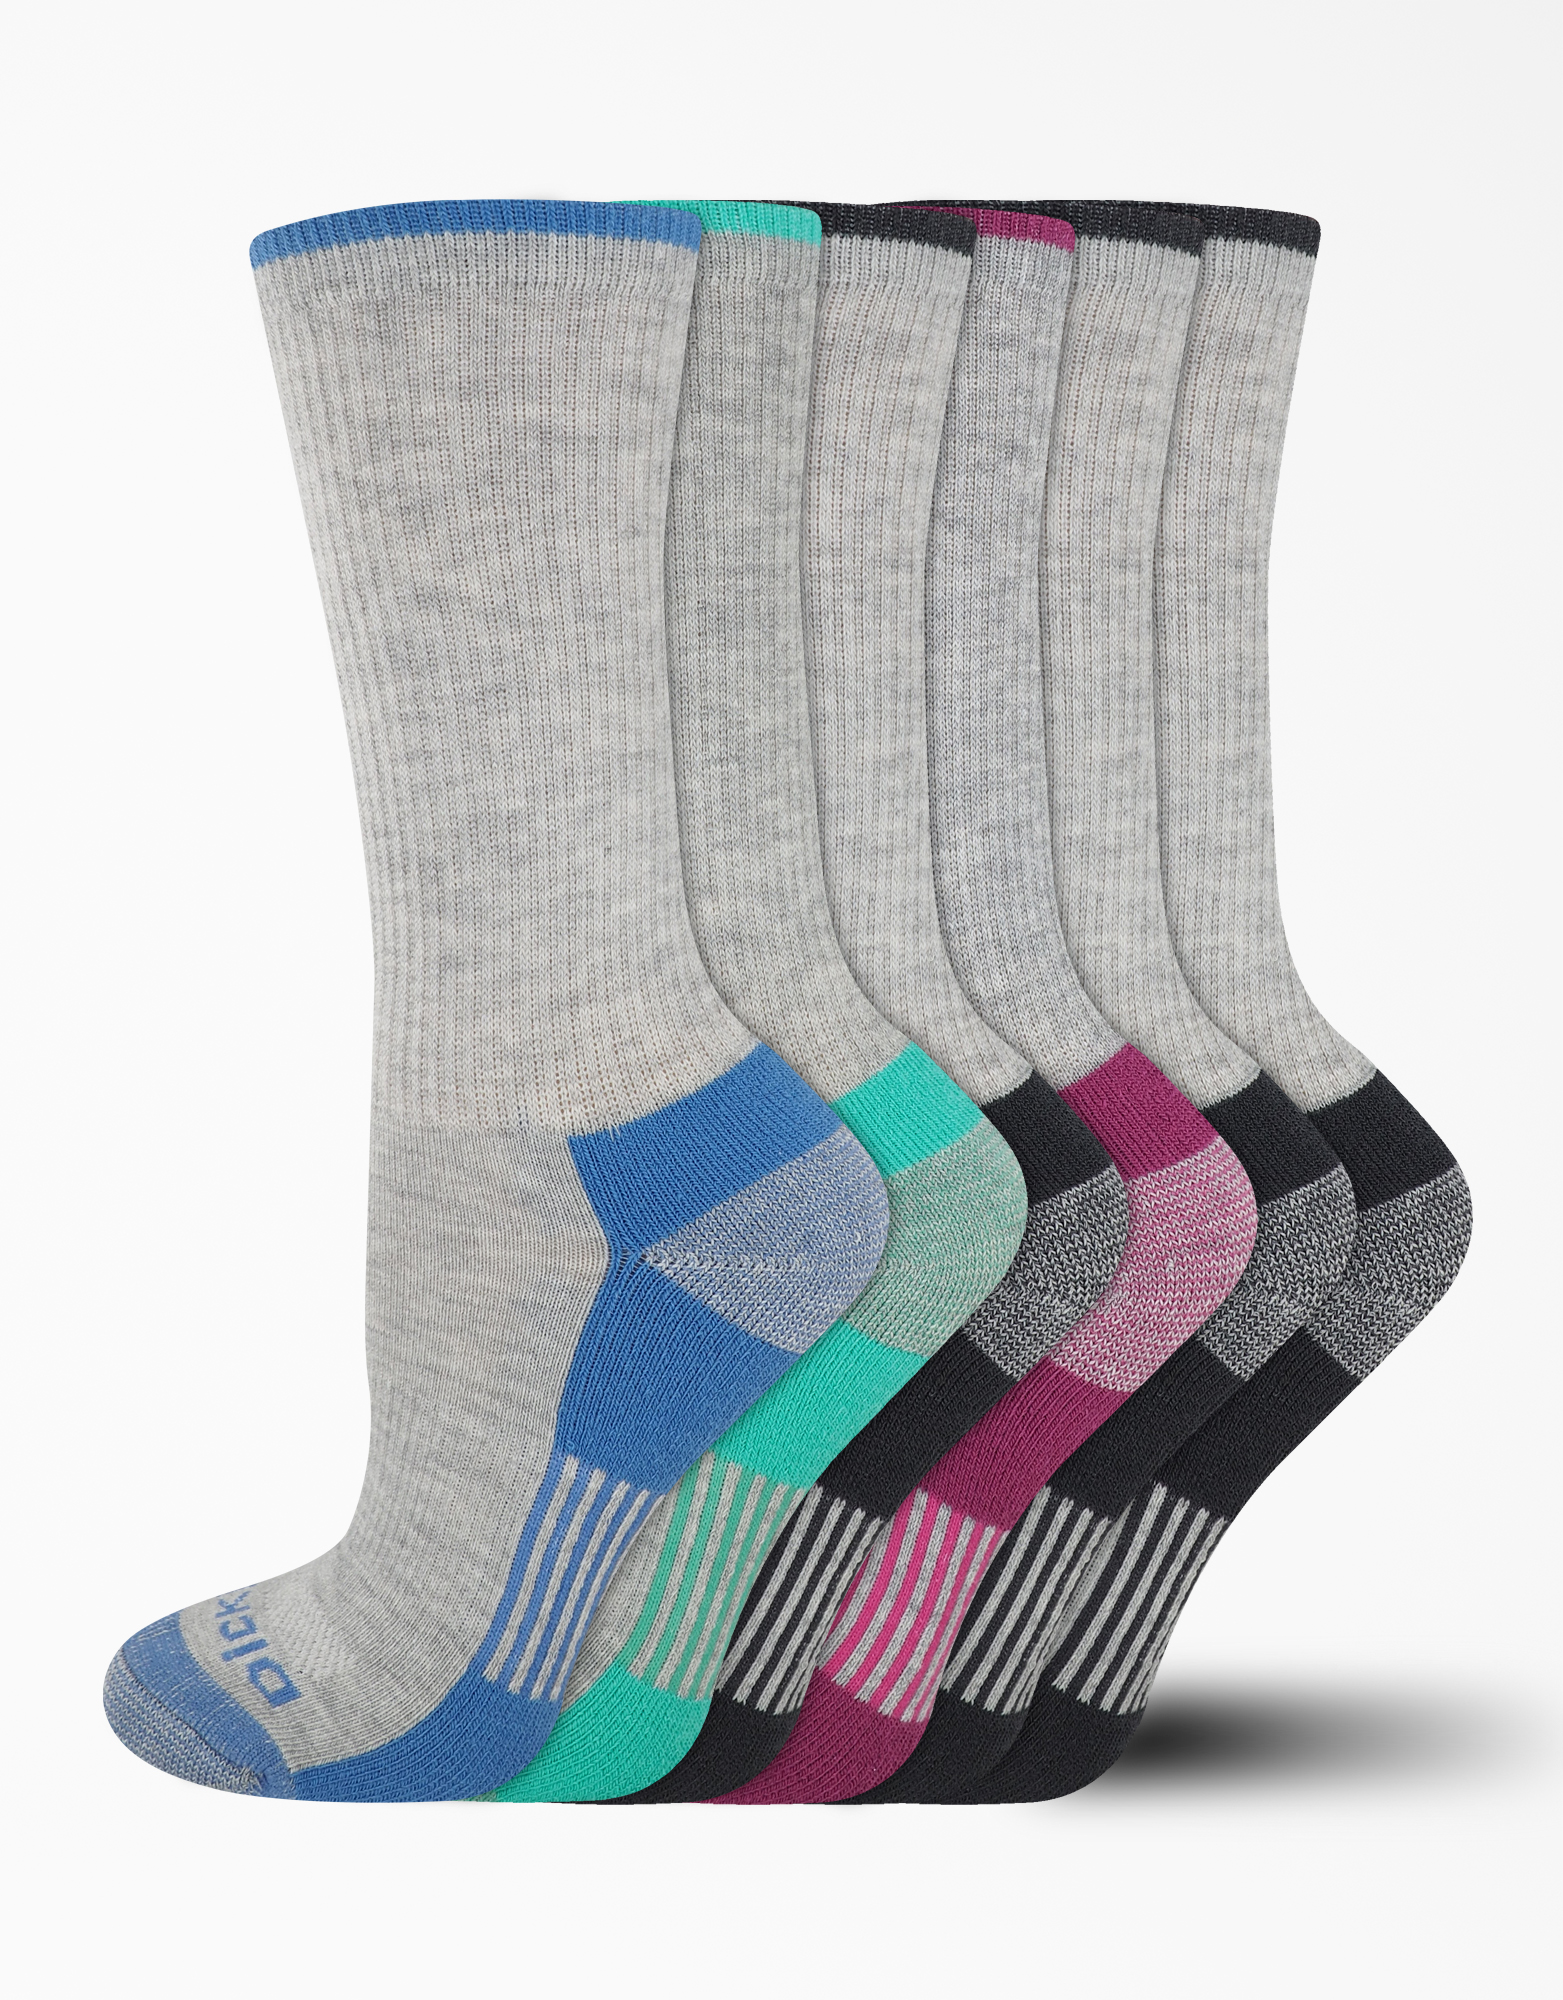 Women's Dri-Tech Crew Socks, 6-Pack, Size 6-9 - Gray (GY)